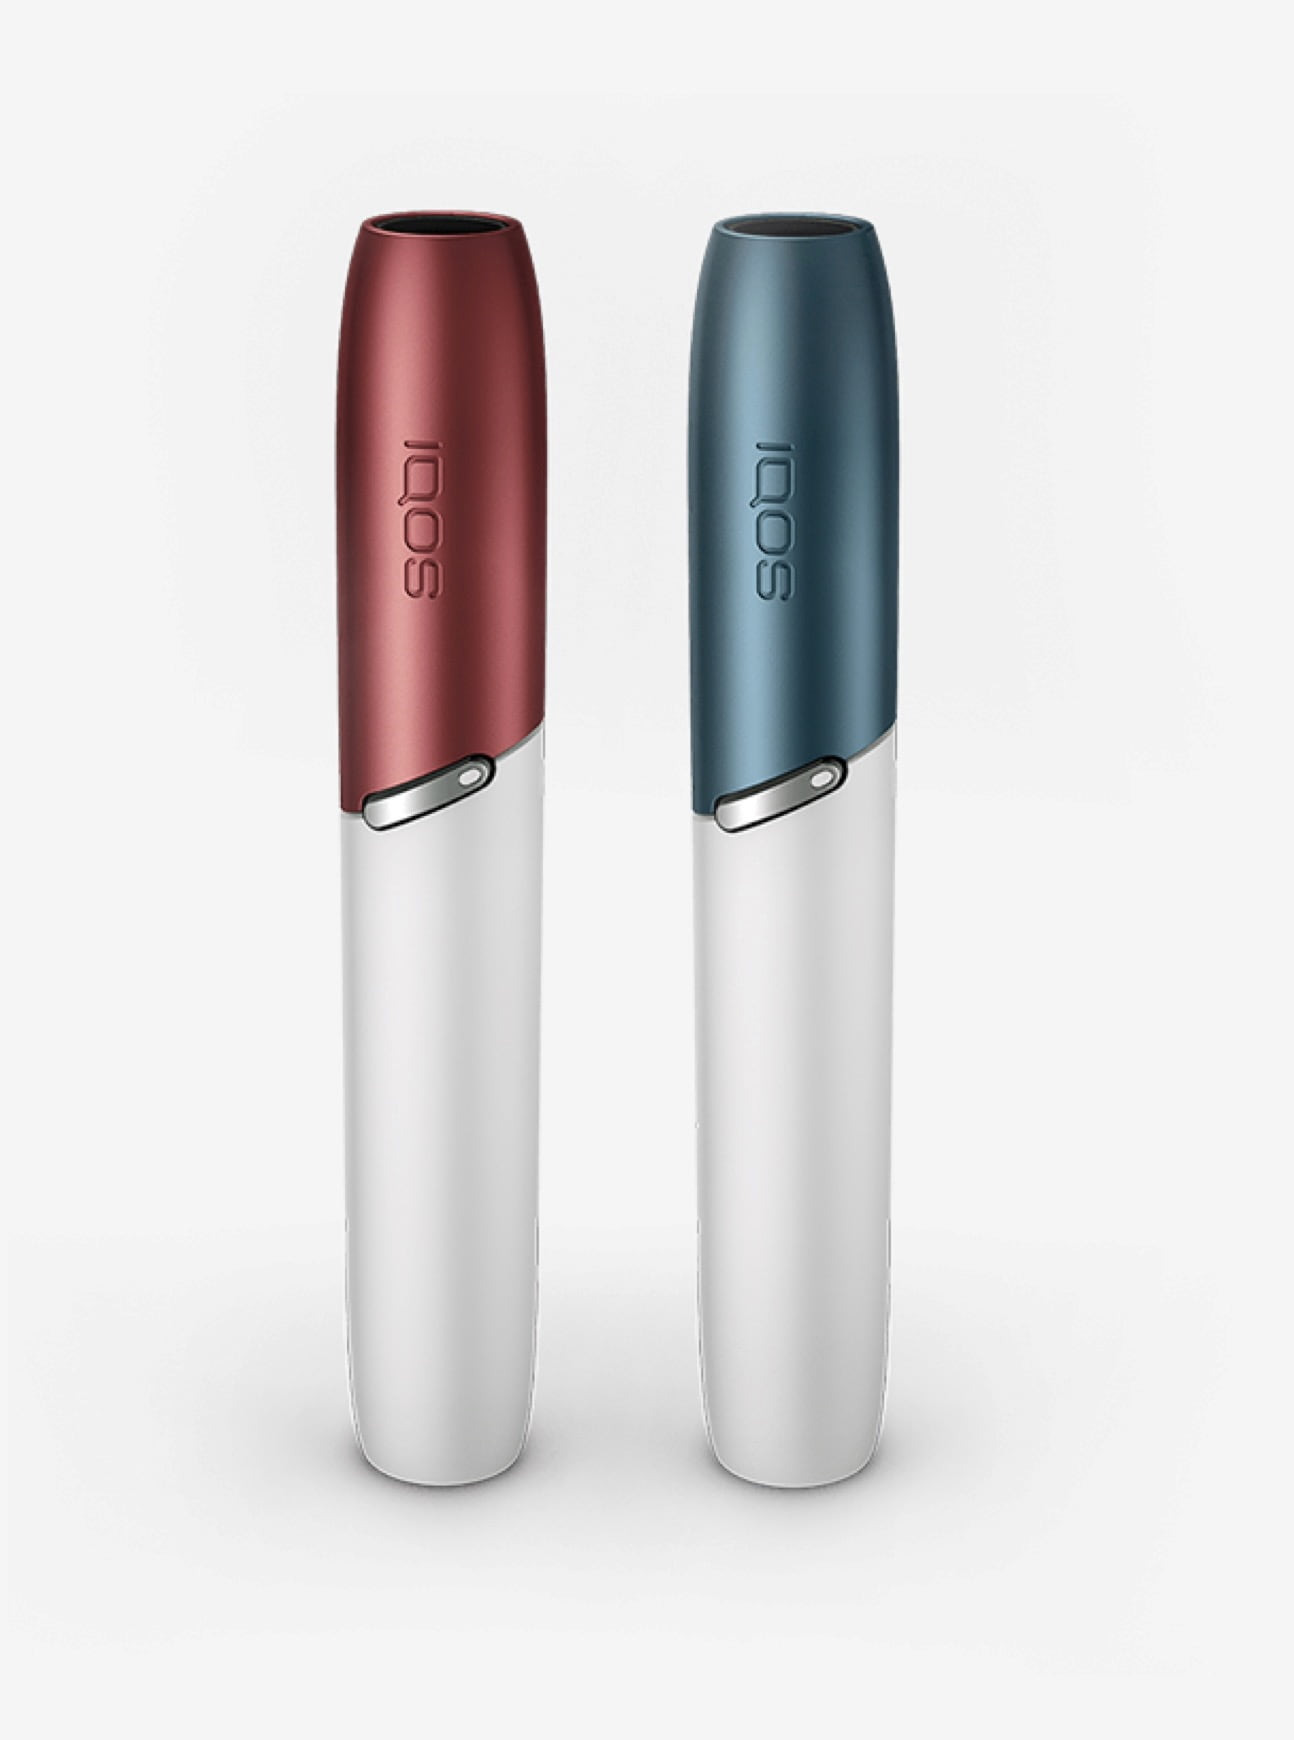 IQOS 3 Red and Blue